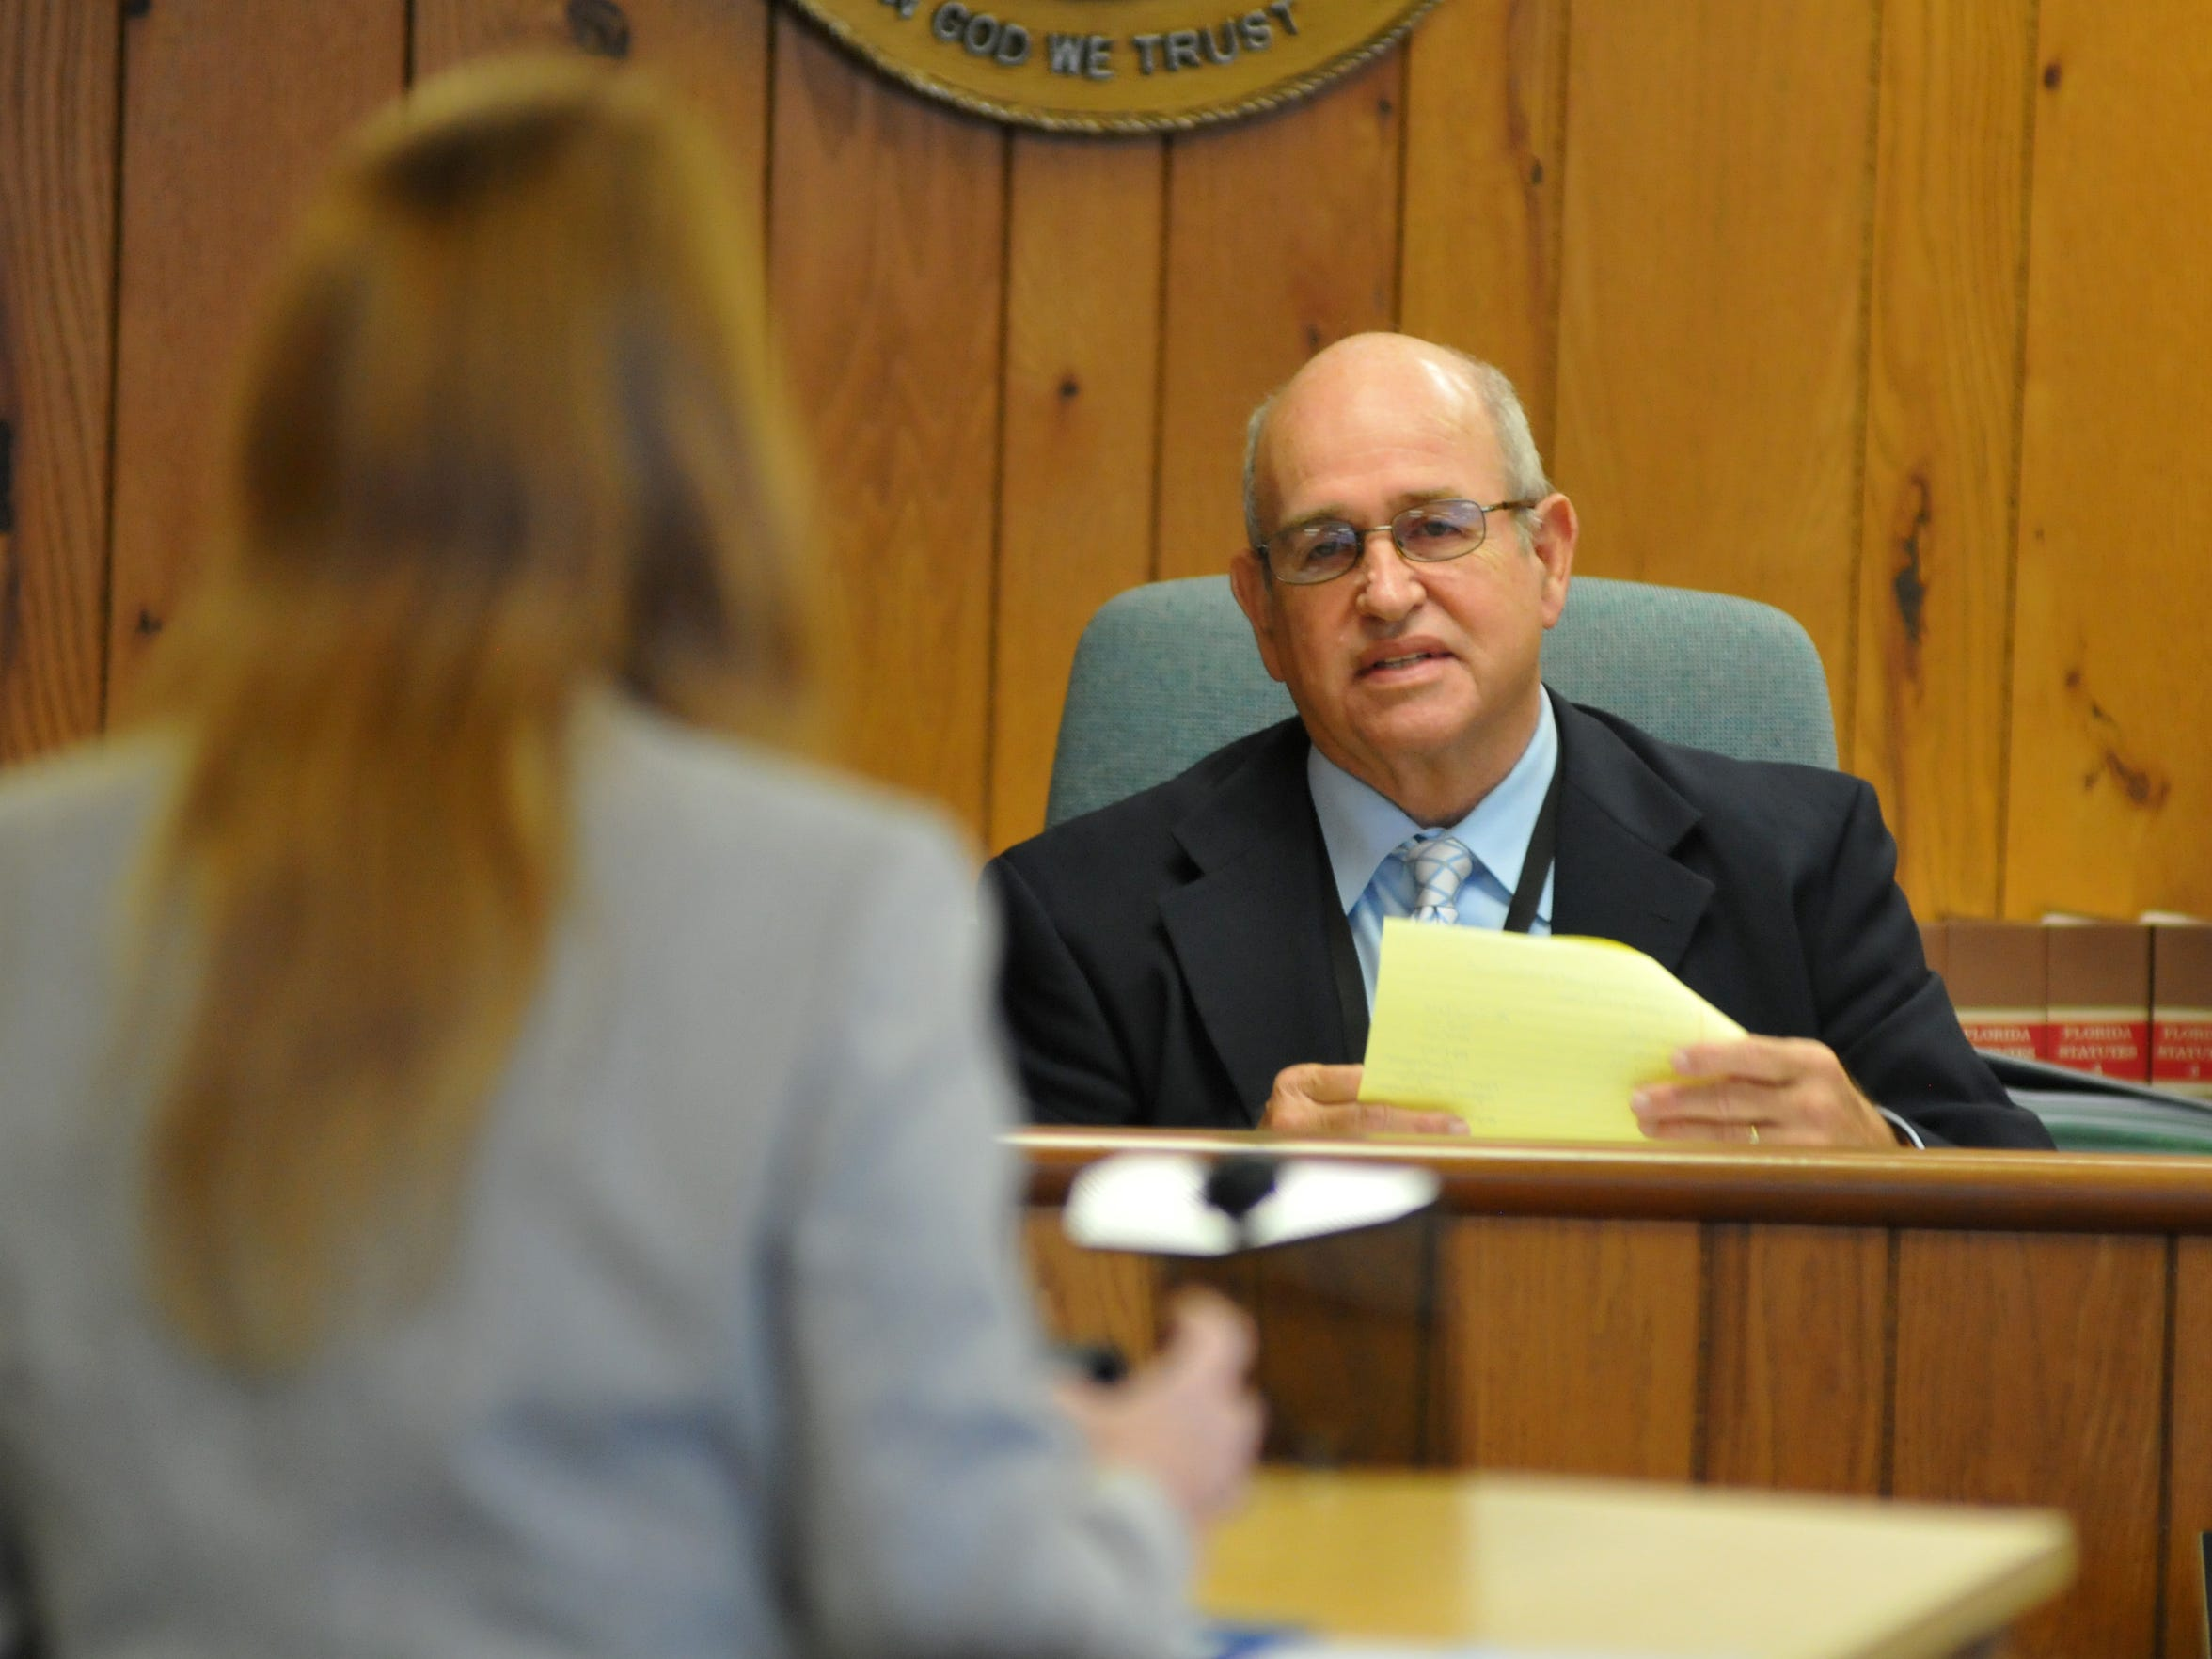 Retired Judge Dean Moxley prosecuted Ramos, Dedge and